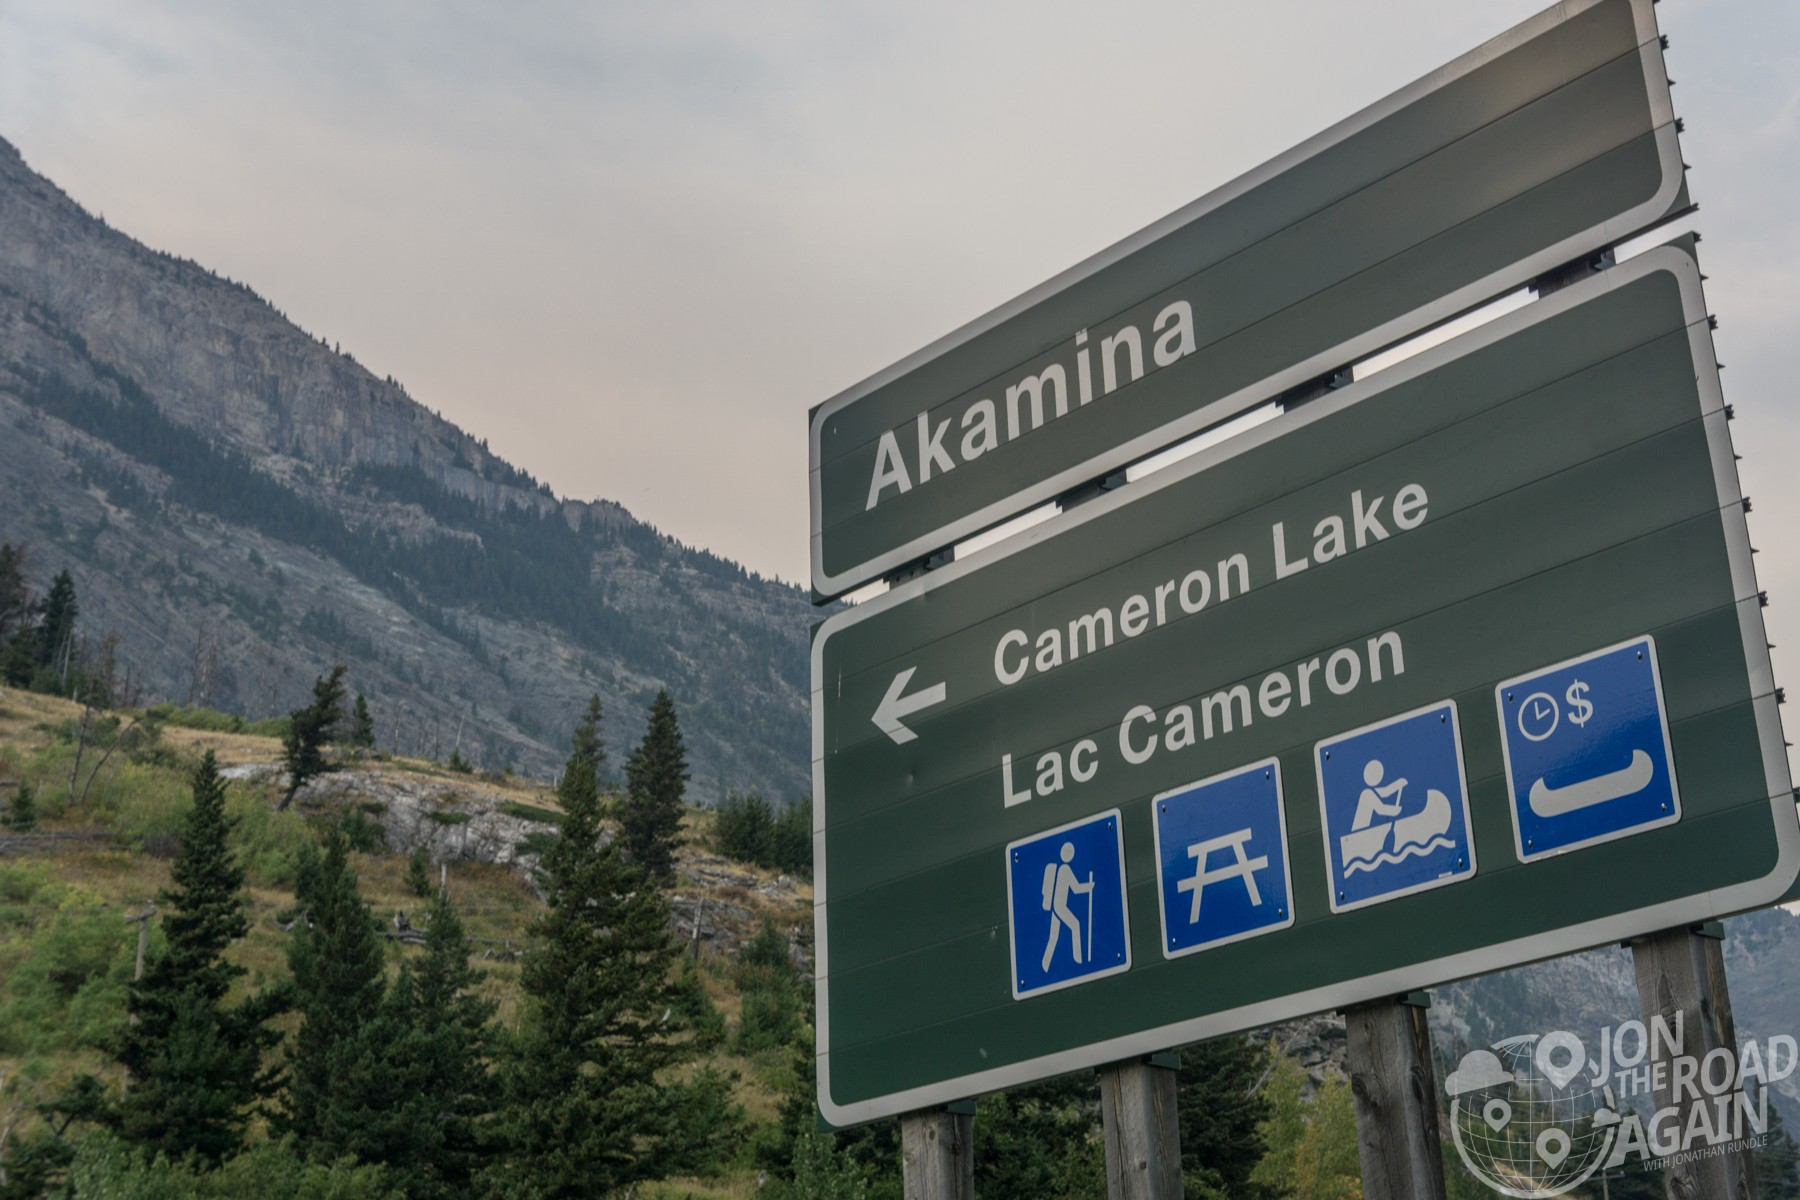 Road sign to Cameron Lake